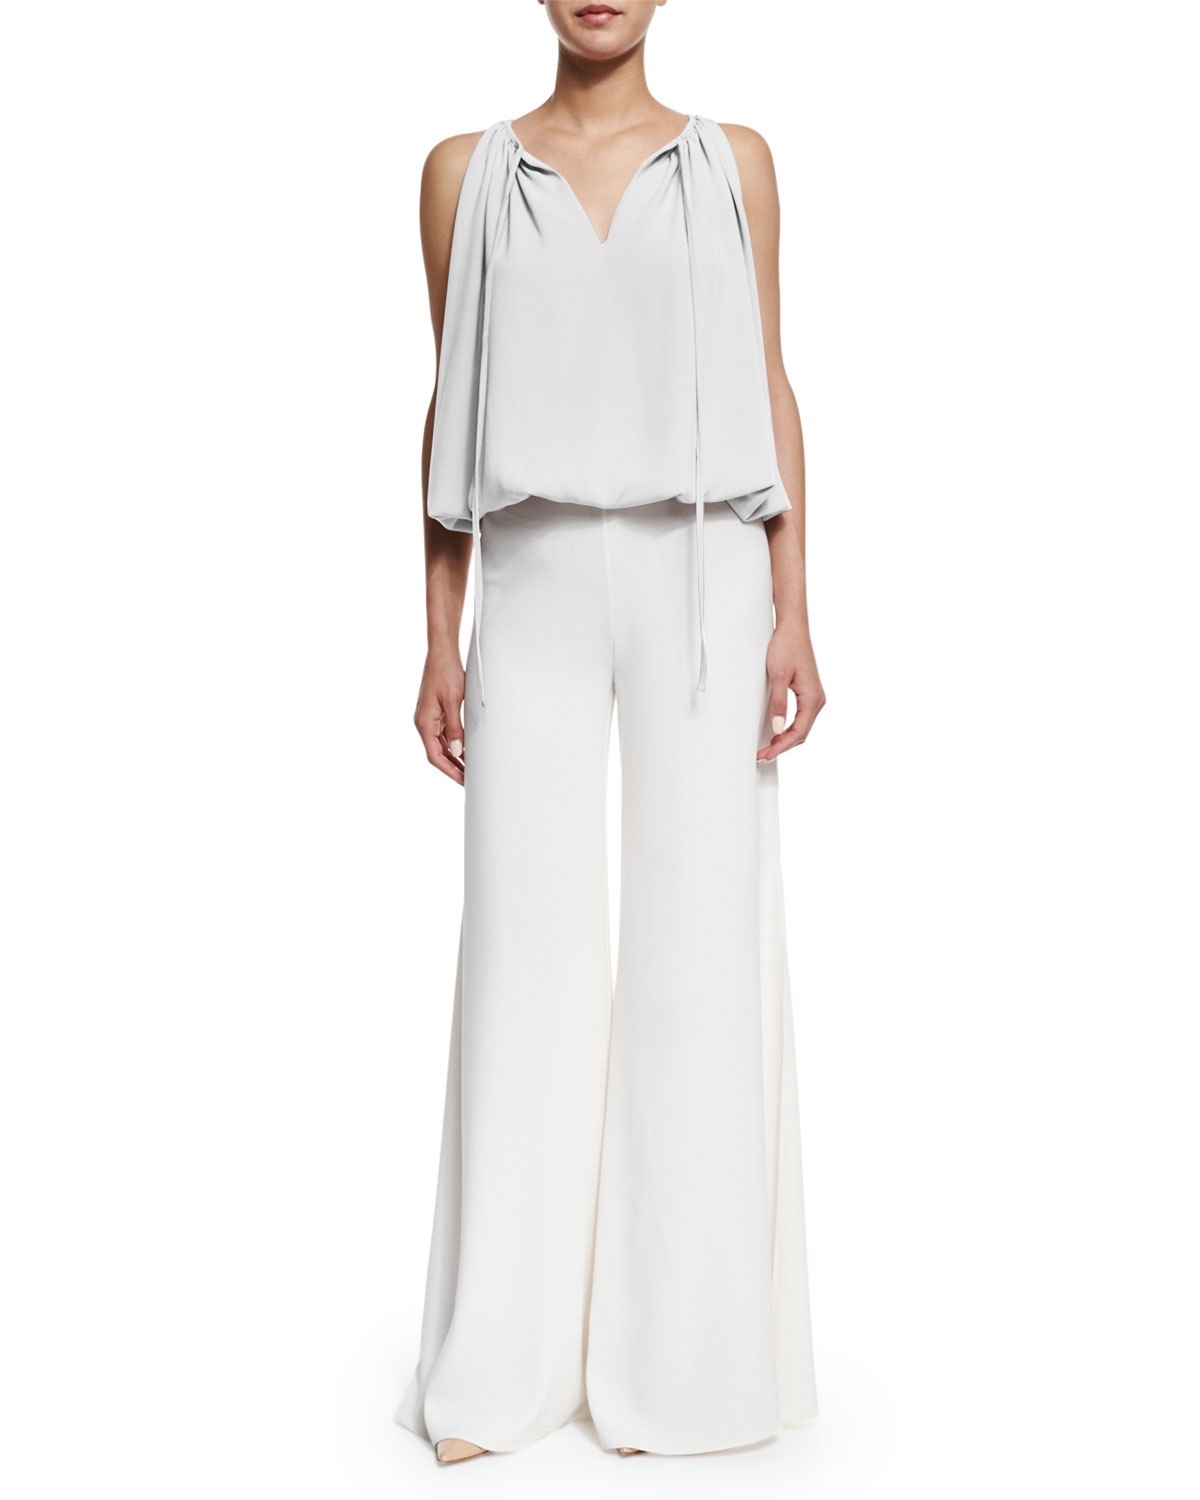 Co. High-waist Wide-leg Pants in White | Lyst